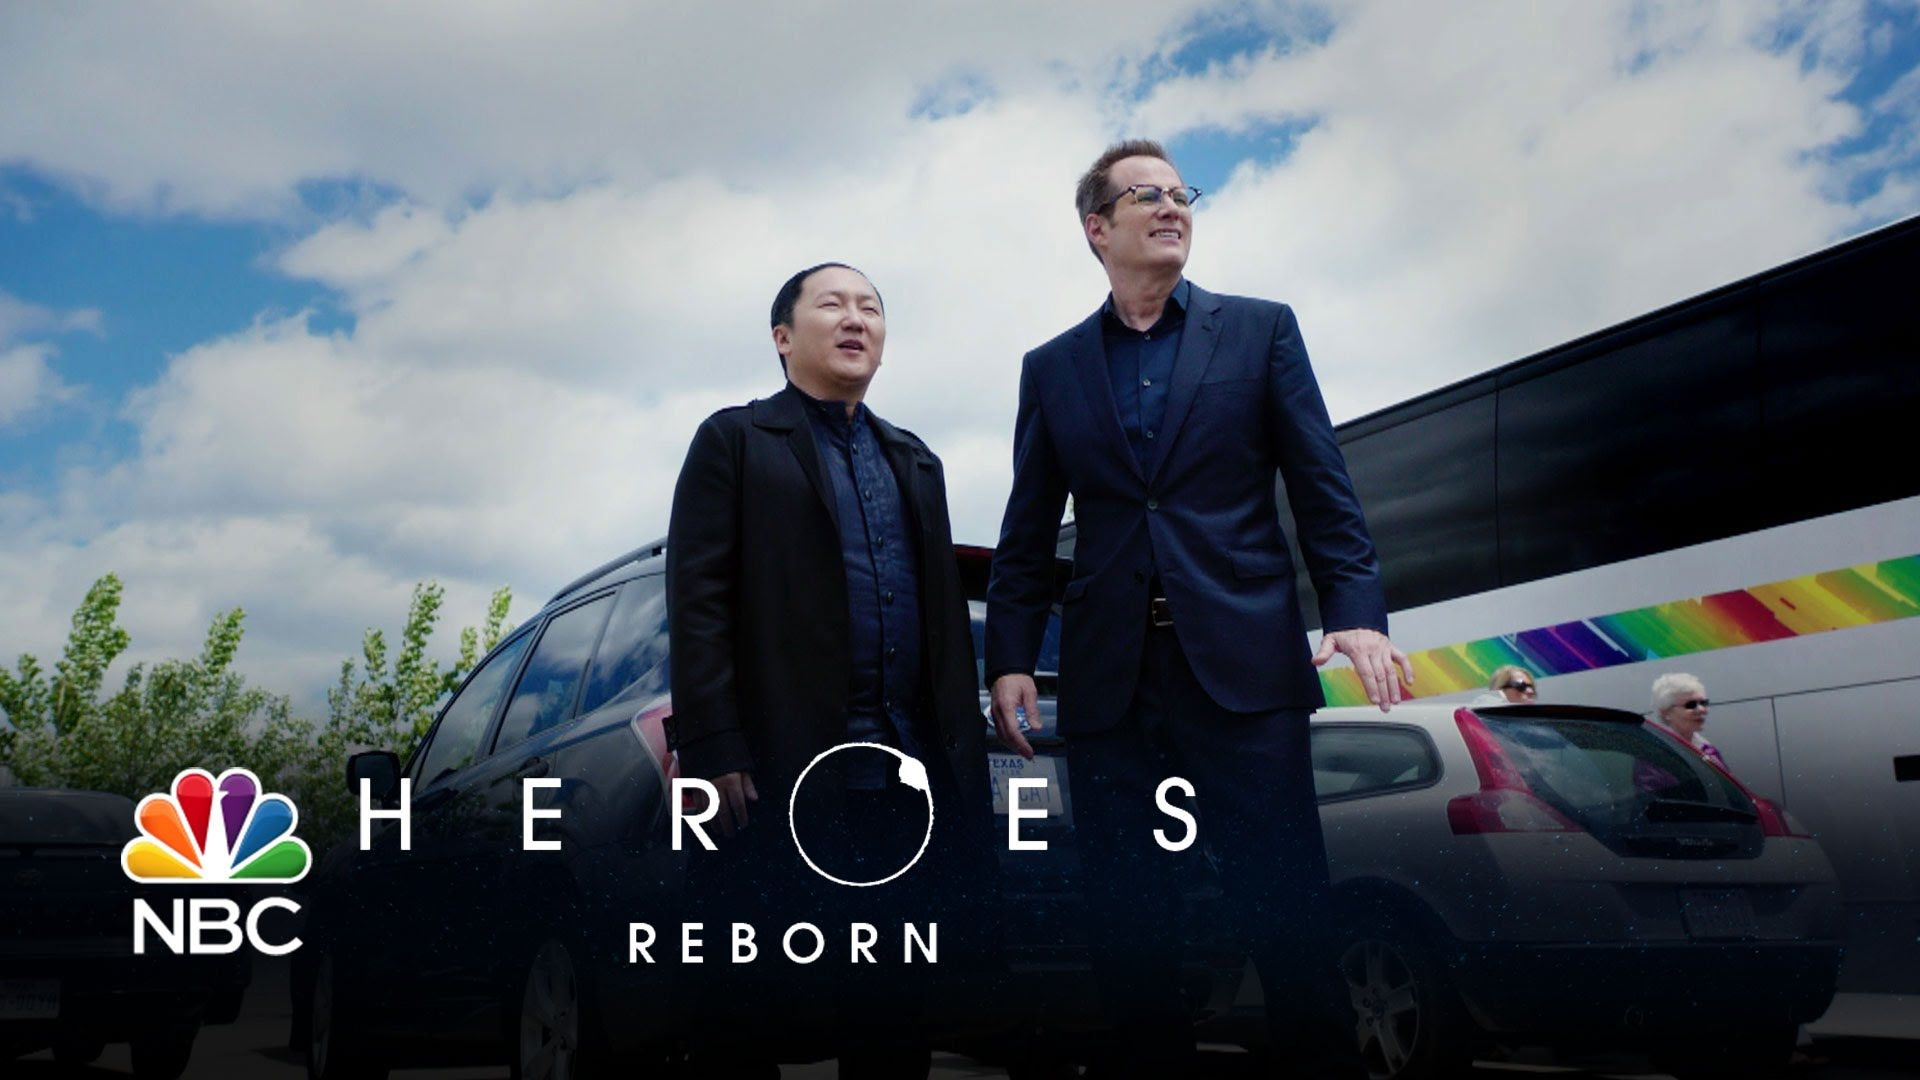 Heroes Reborn - Lives in the Balance (Teaser #3) - (NBC) Thursday, Sept. 24, 2015 at 8 p.m.